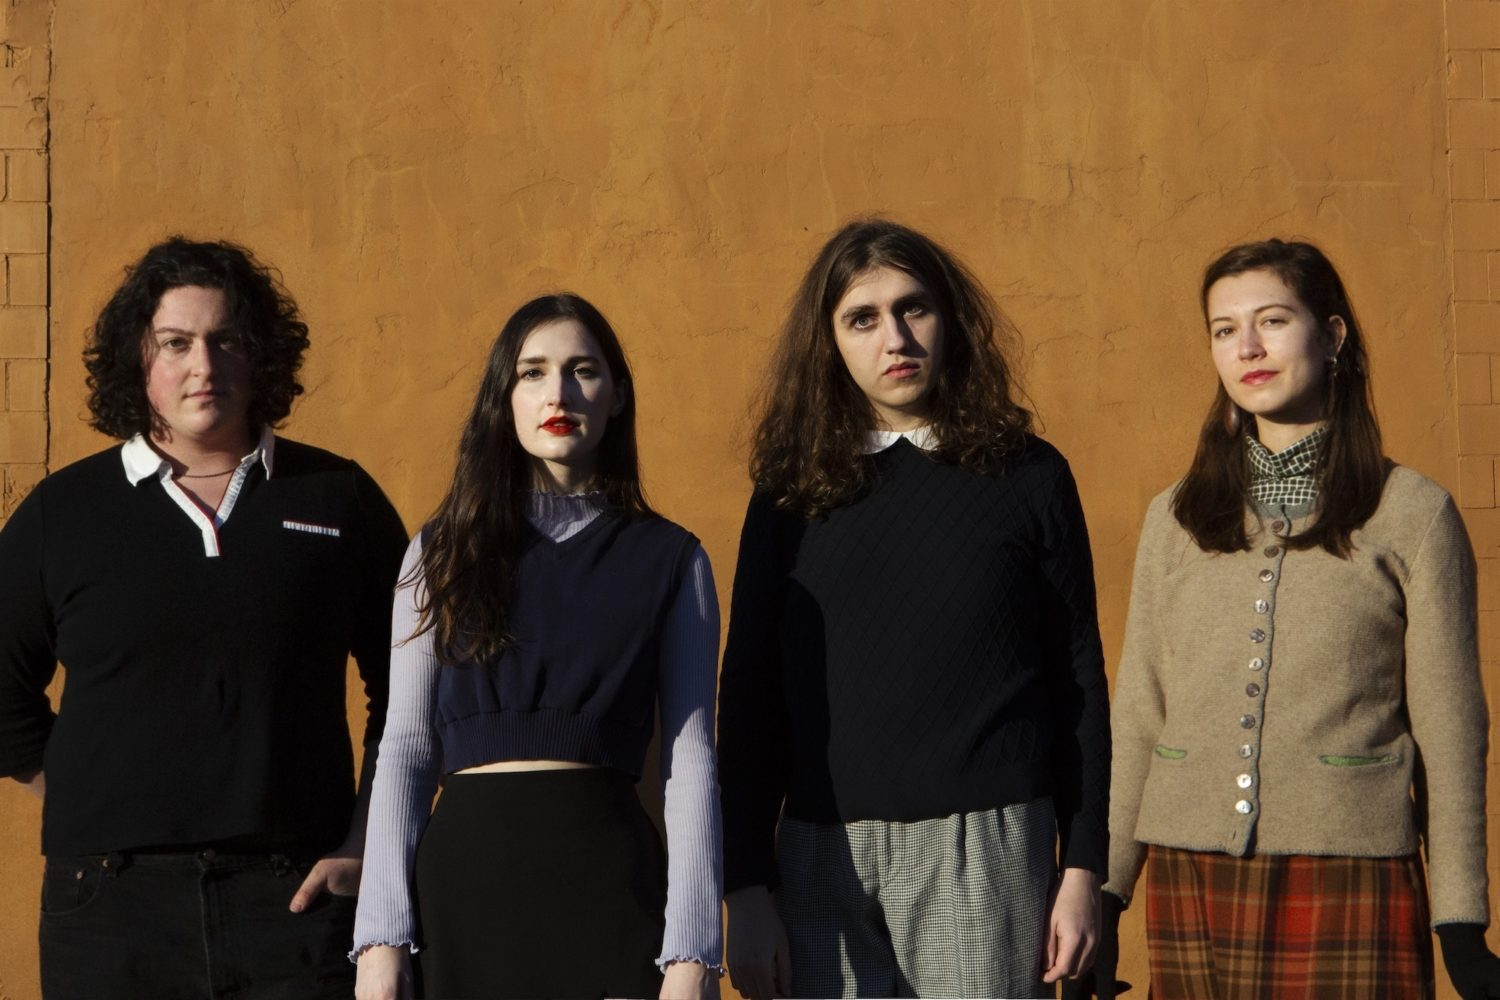 The Ophelias share new single 'The Twilight Zone'